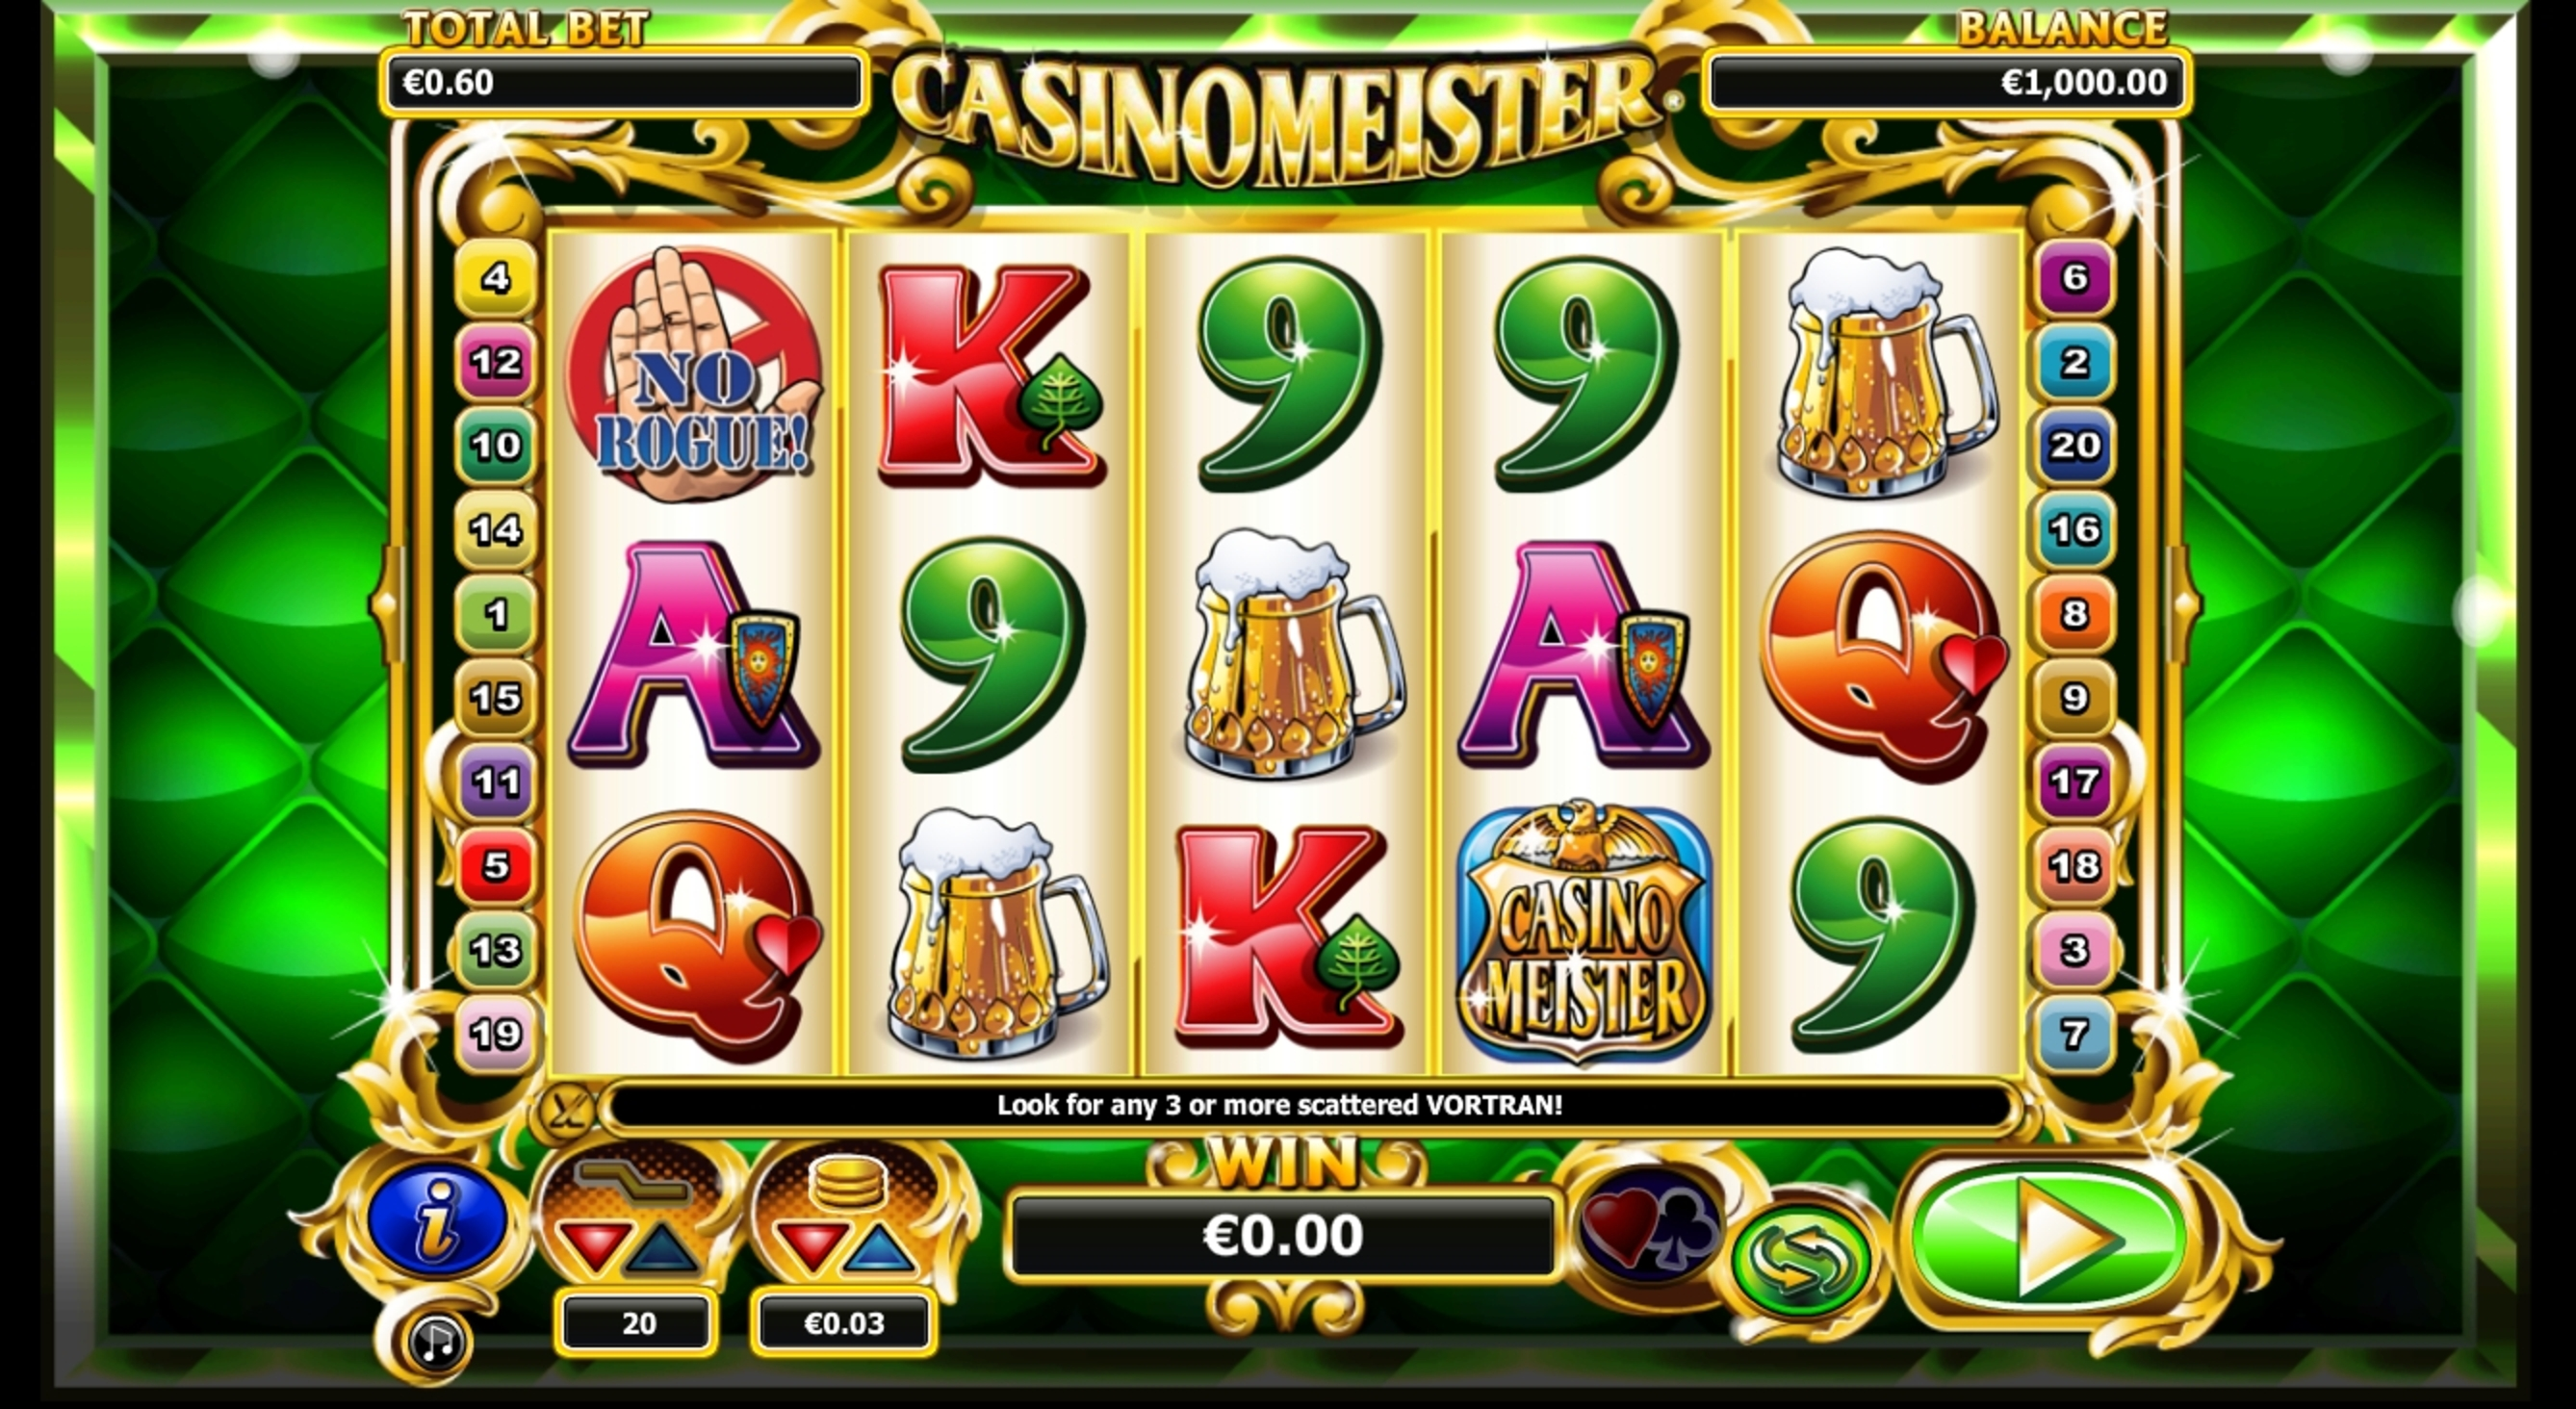 Reels in Casinomeister Slot Game by NextGen Gaming